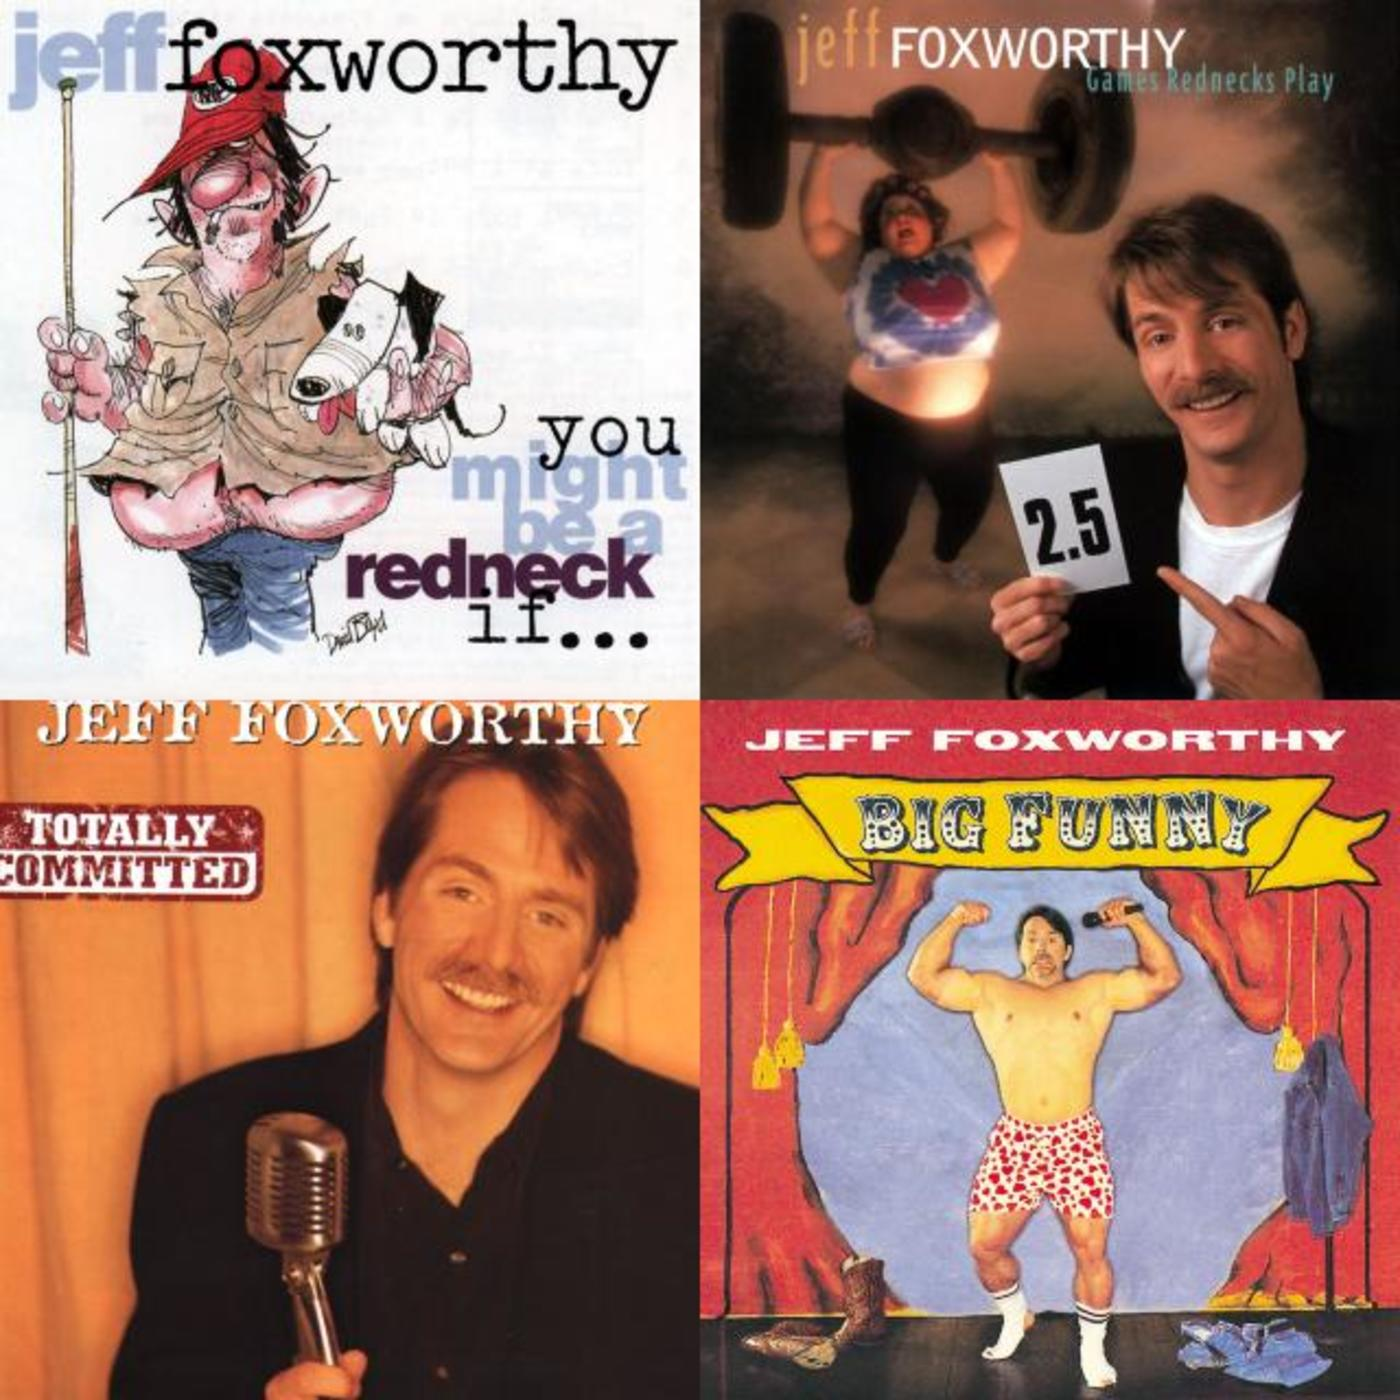 You Might Be a Jeff Foxworthy fan if